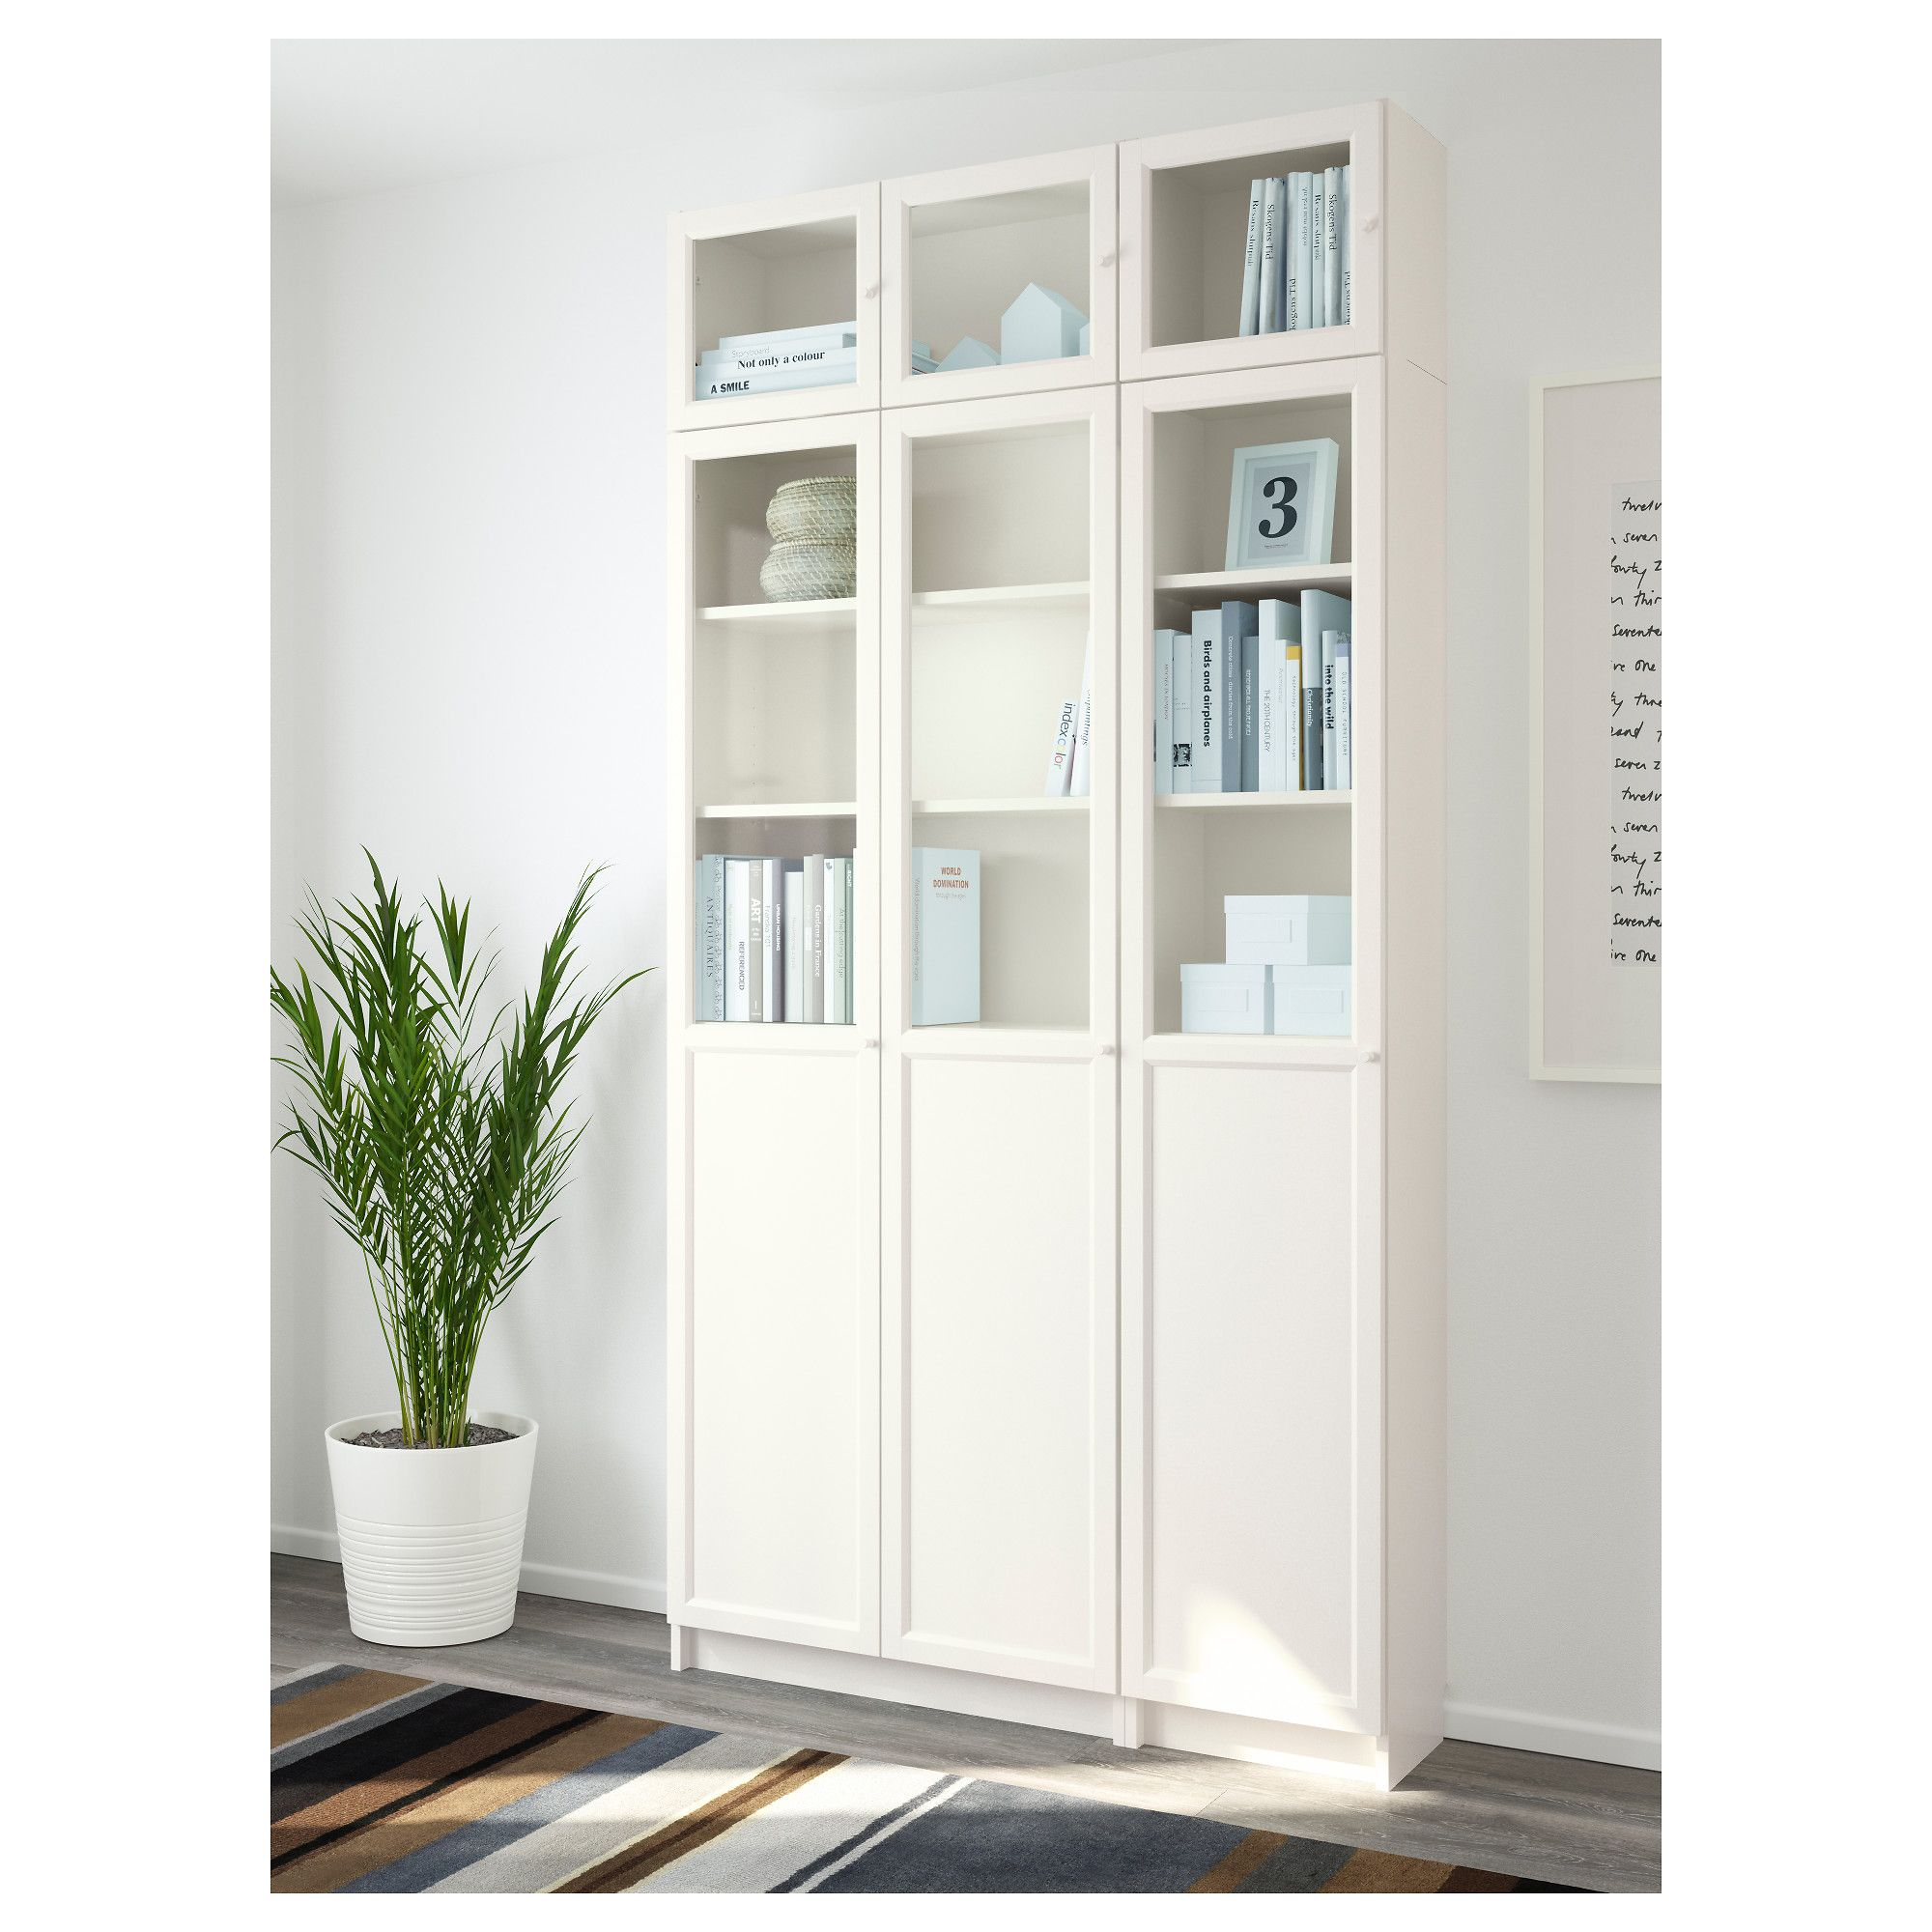 Ikea Billy Bookcase White Billy Oxberg Bookcase White Glass 120x237x30 Cm Ikea